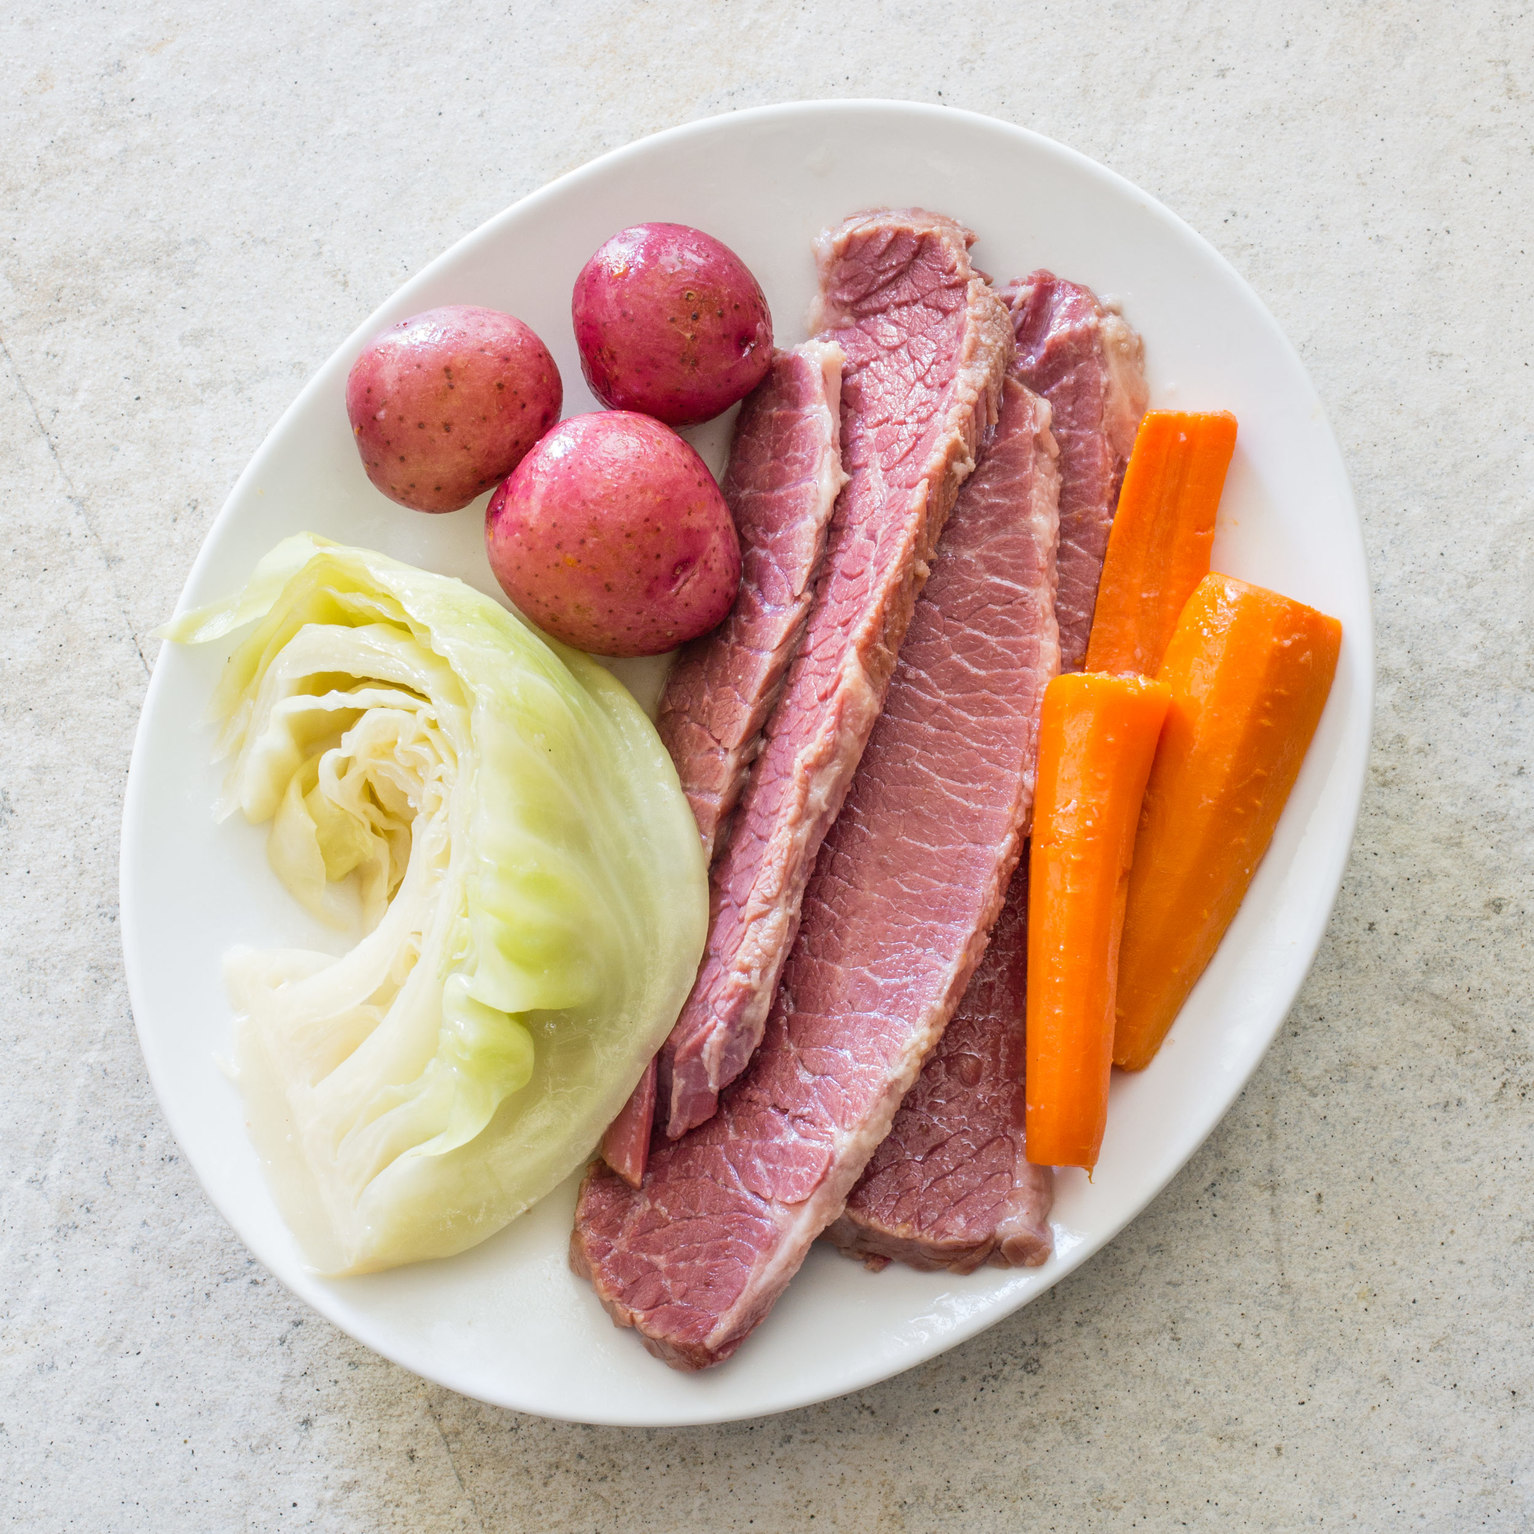 Home-Corned Beef with Vegetables | America's Test Kitchen